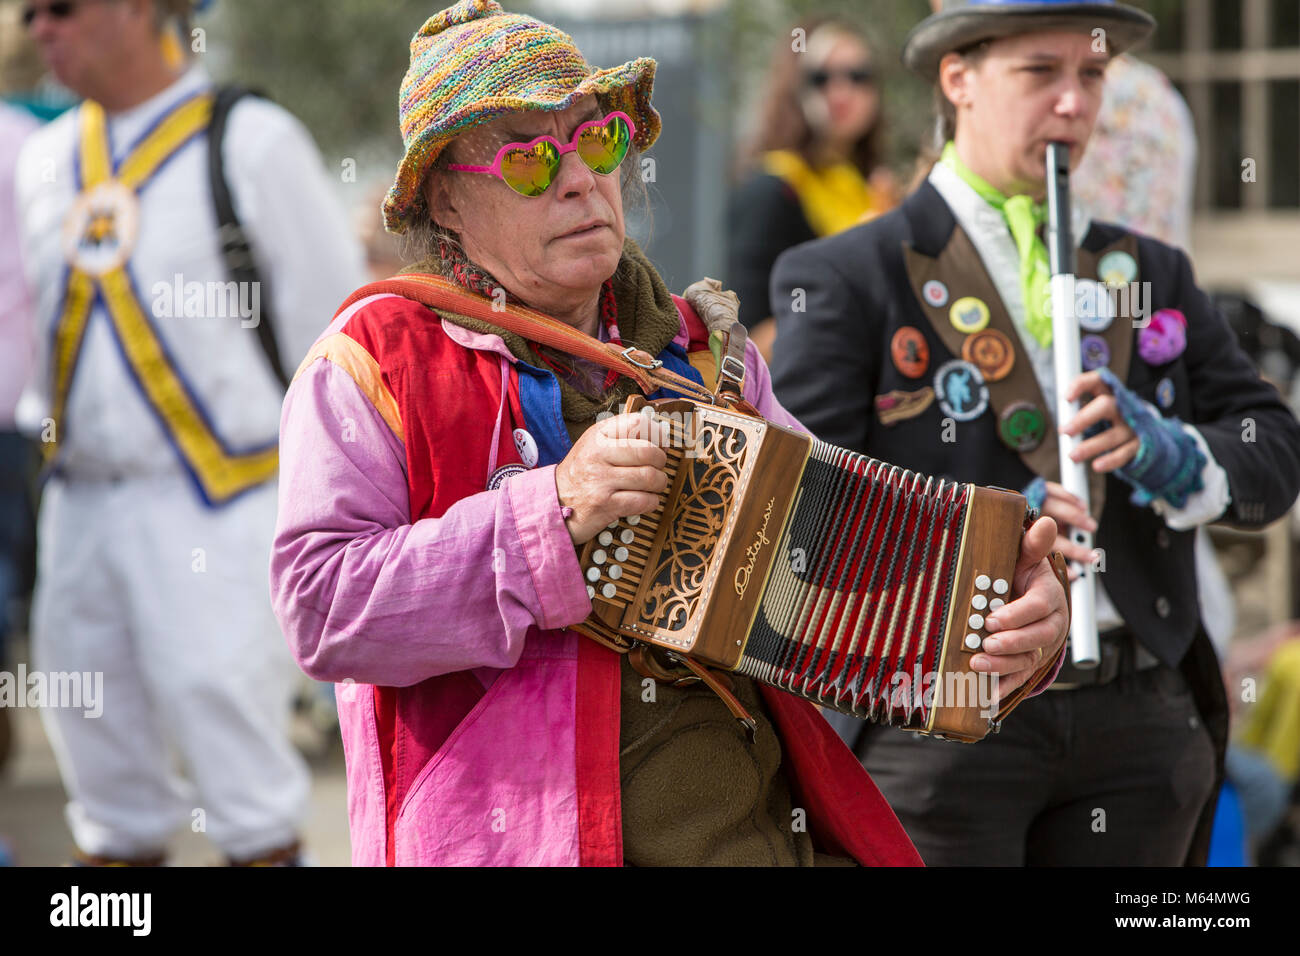 Squeeze box player at Tenterden Folk Festival - Stock Image